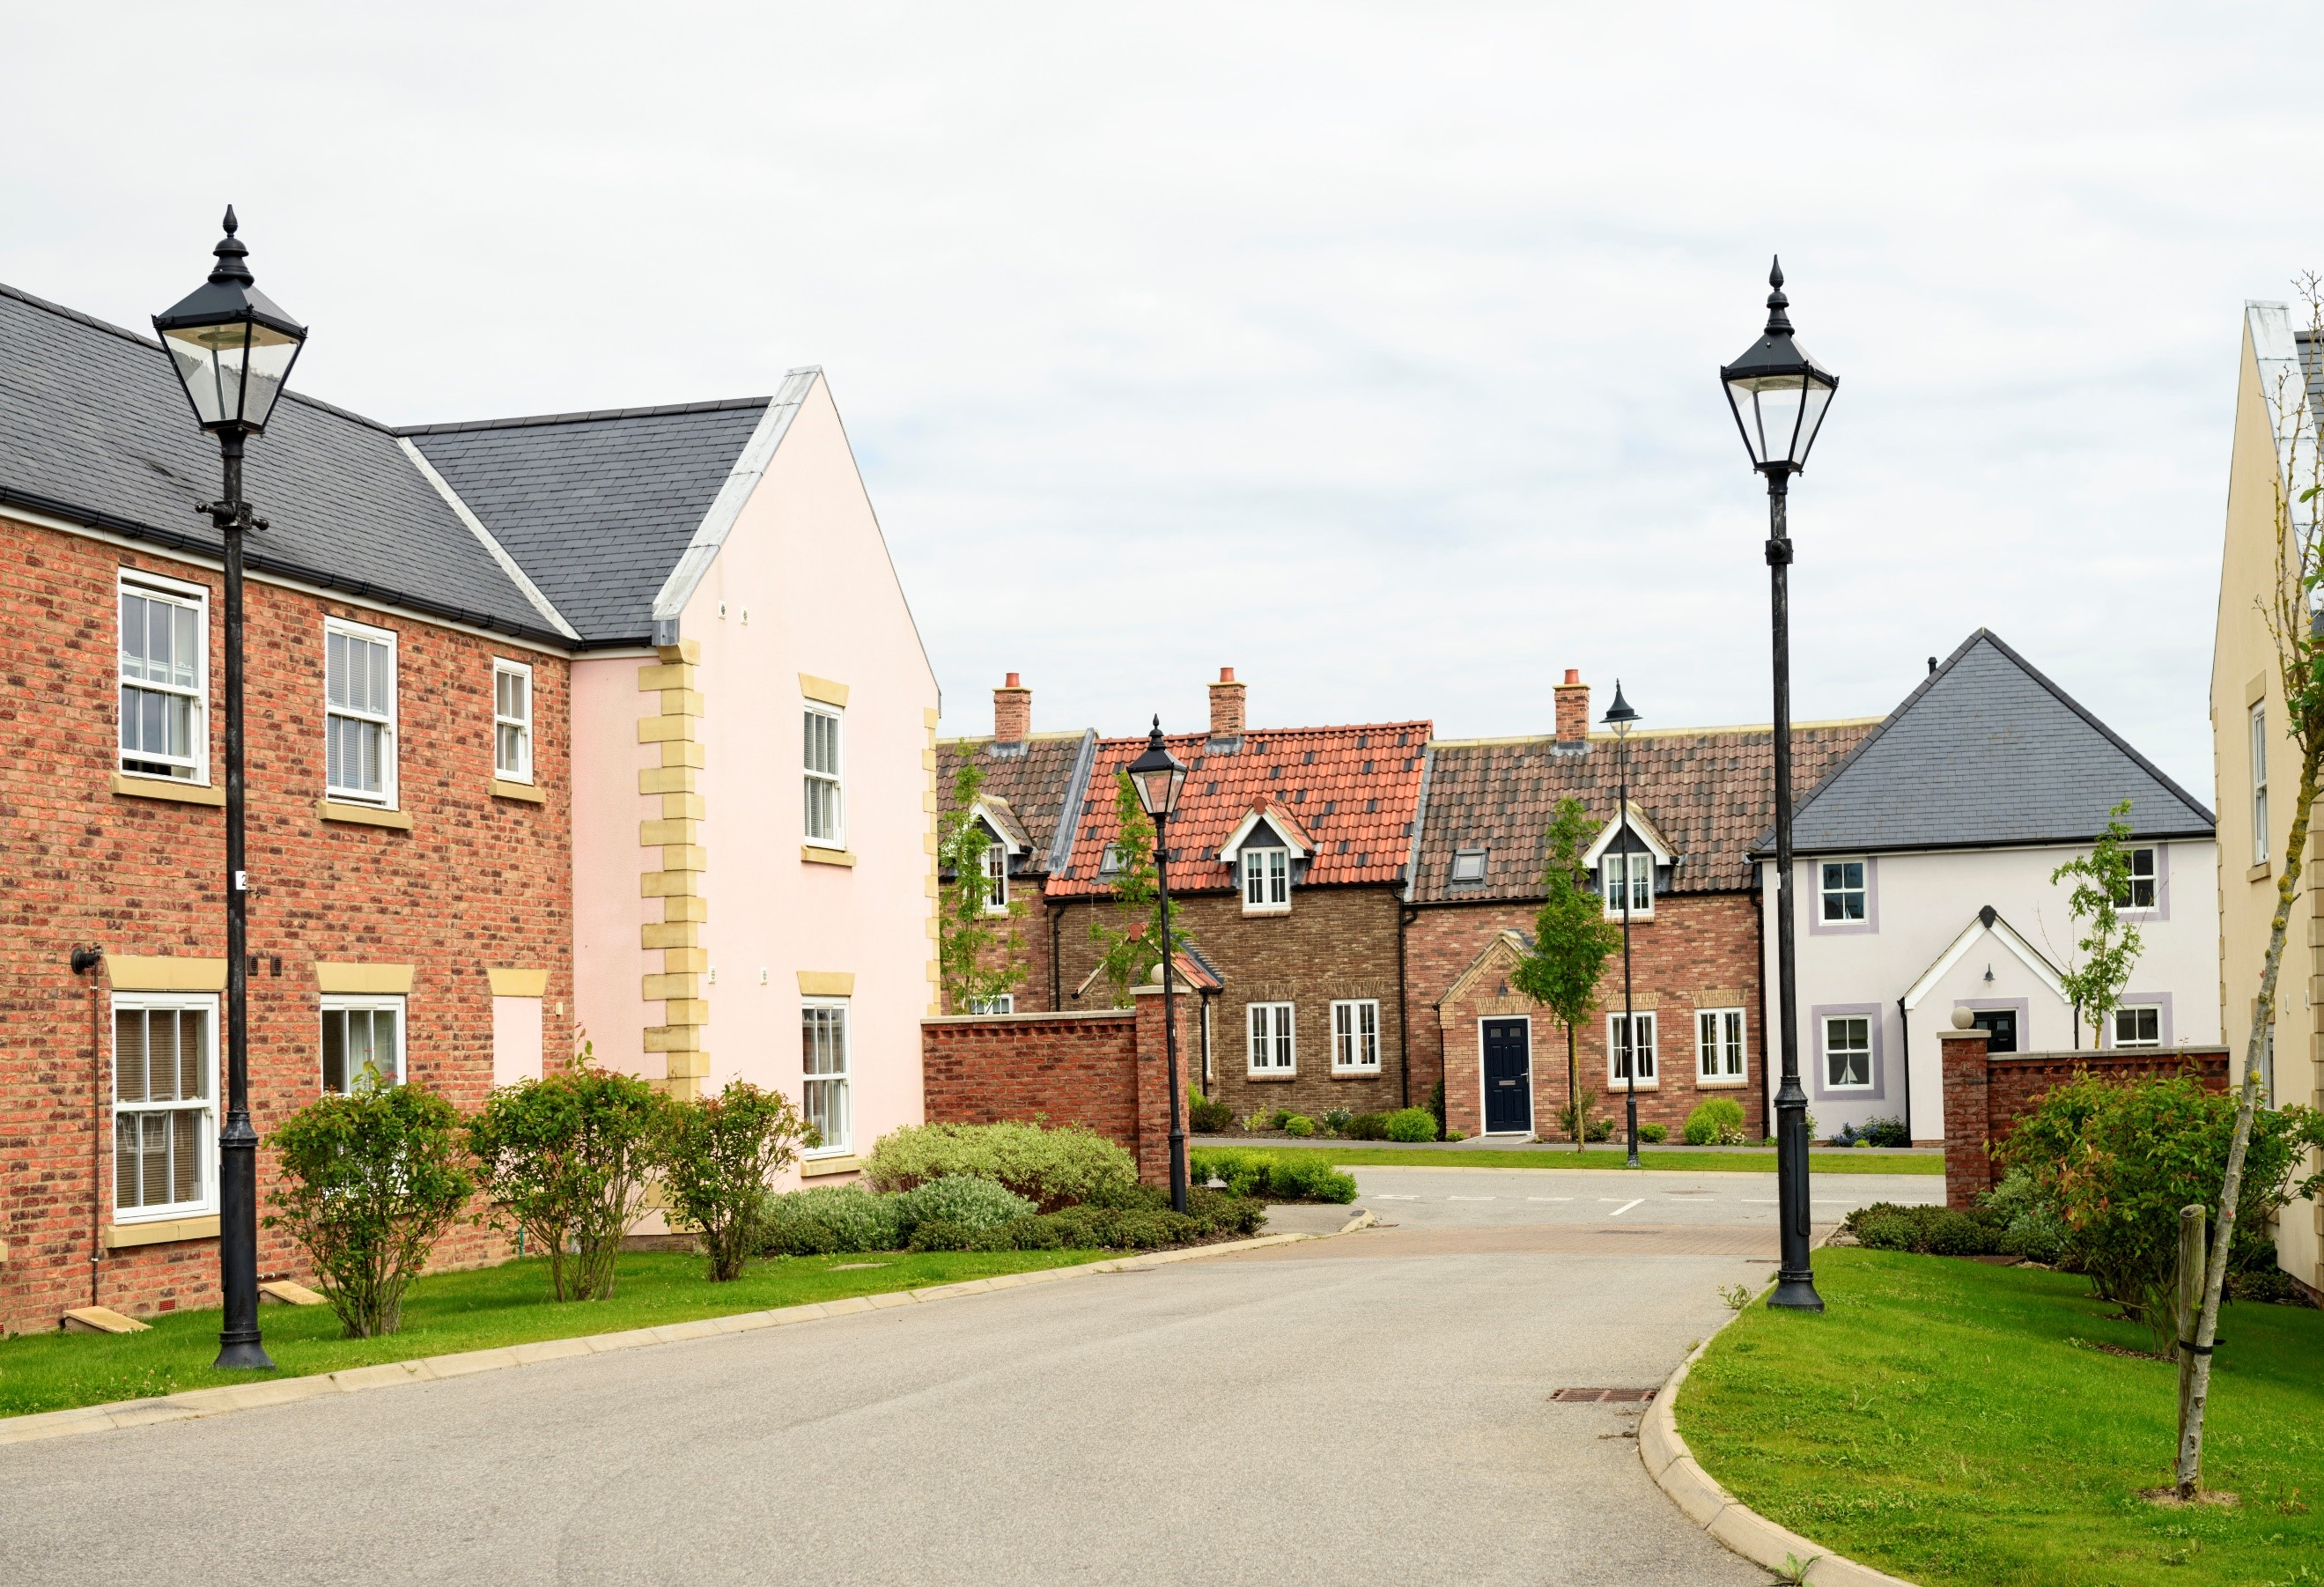 Modern Mews Estate